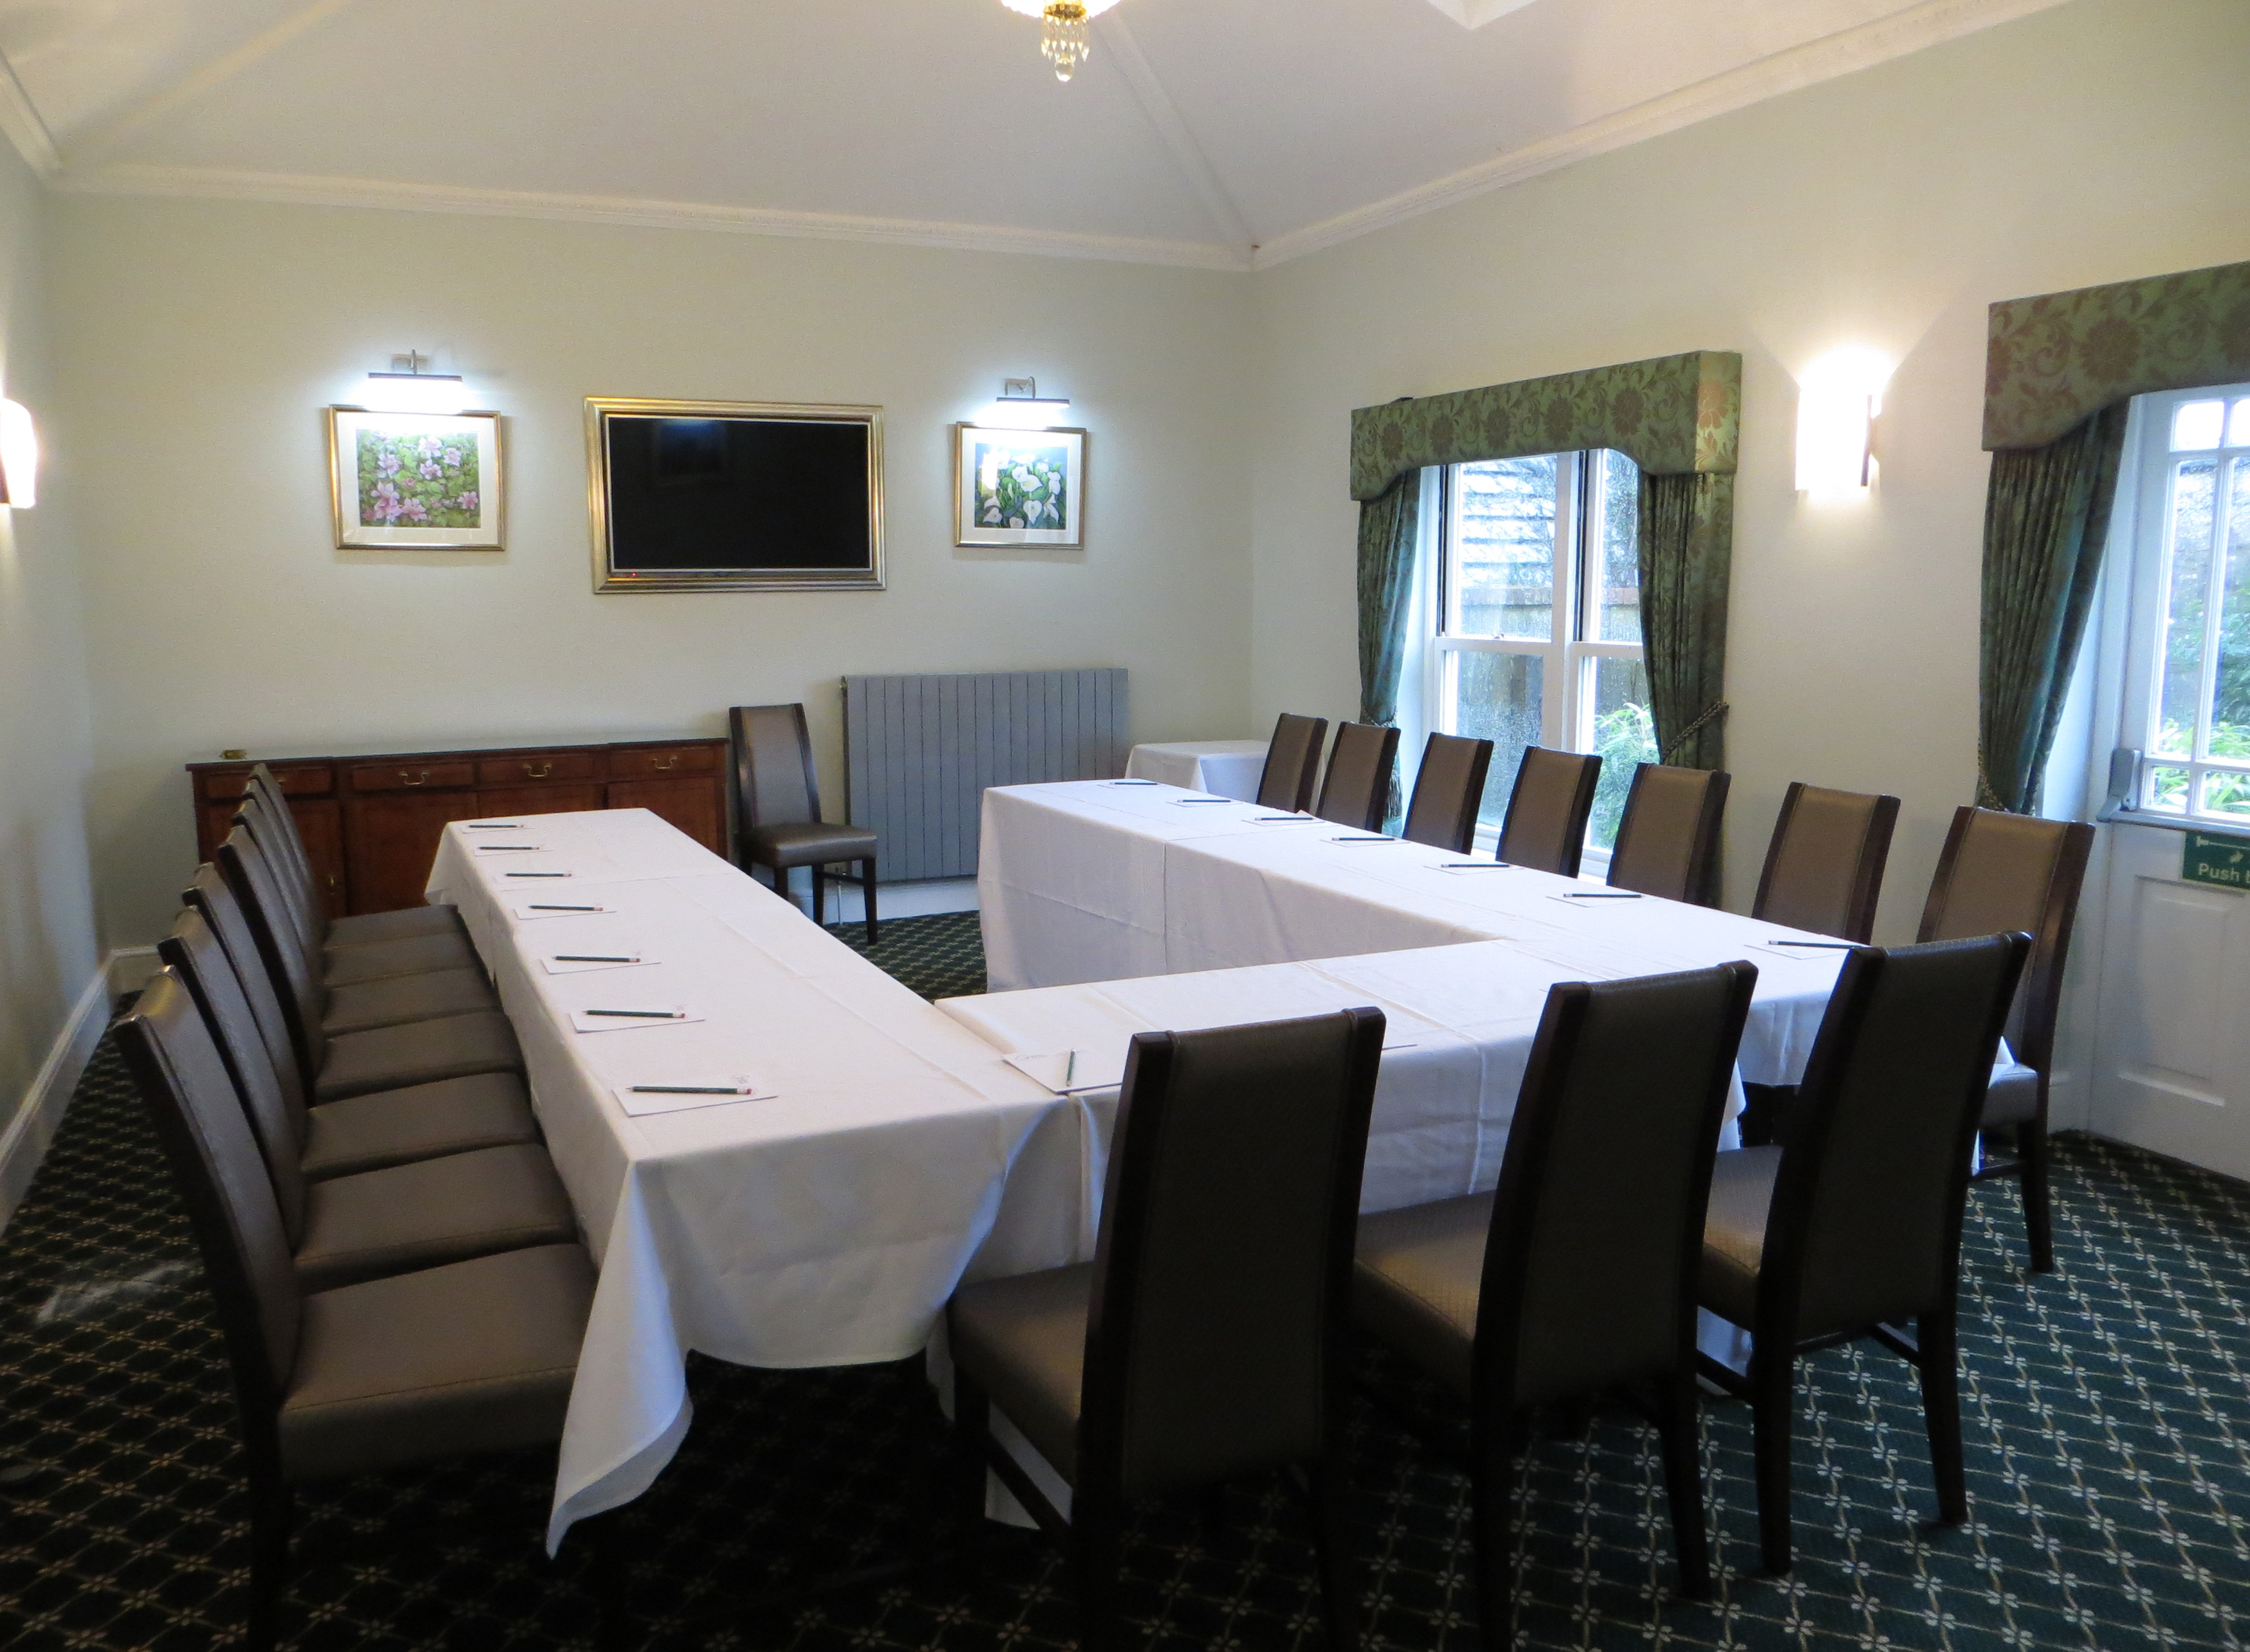 Barbury Room set up for U-shaped Business Meeting at Chiseldon House Hotel